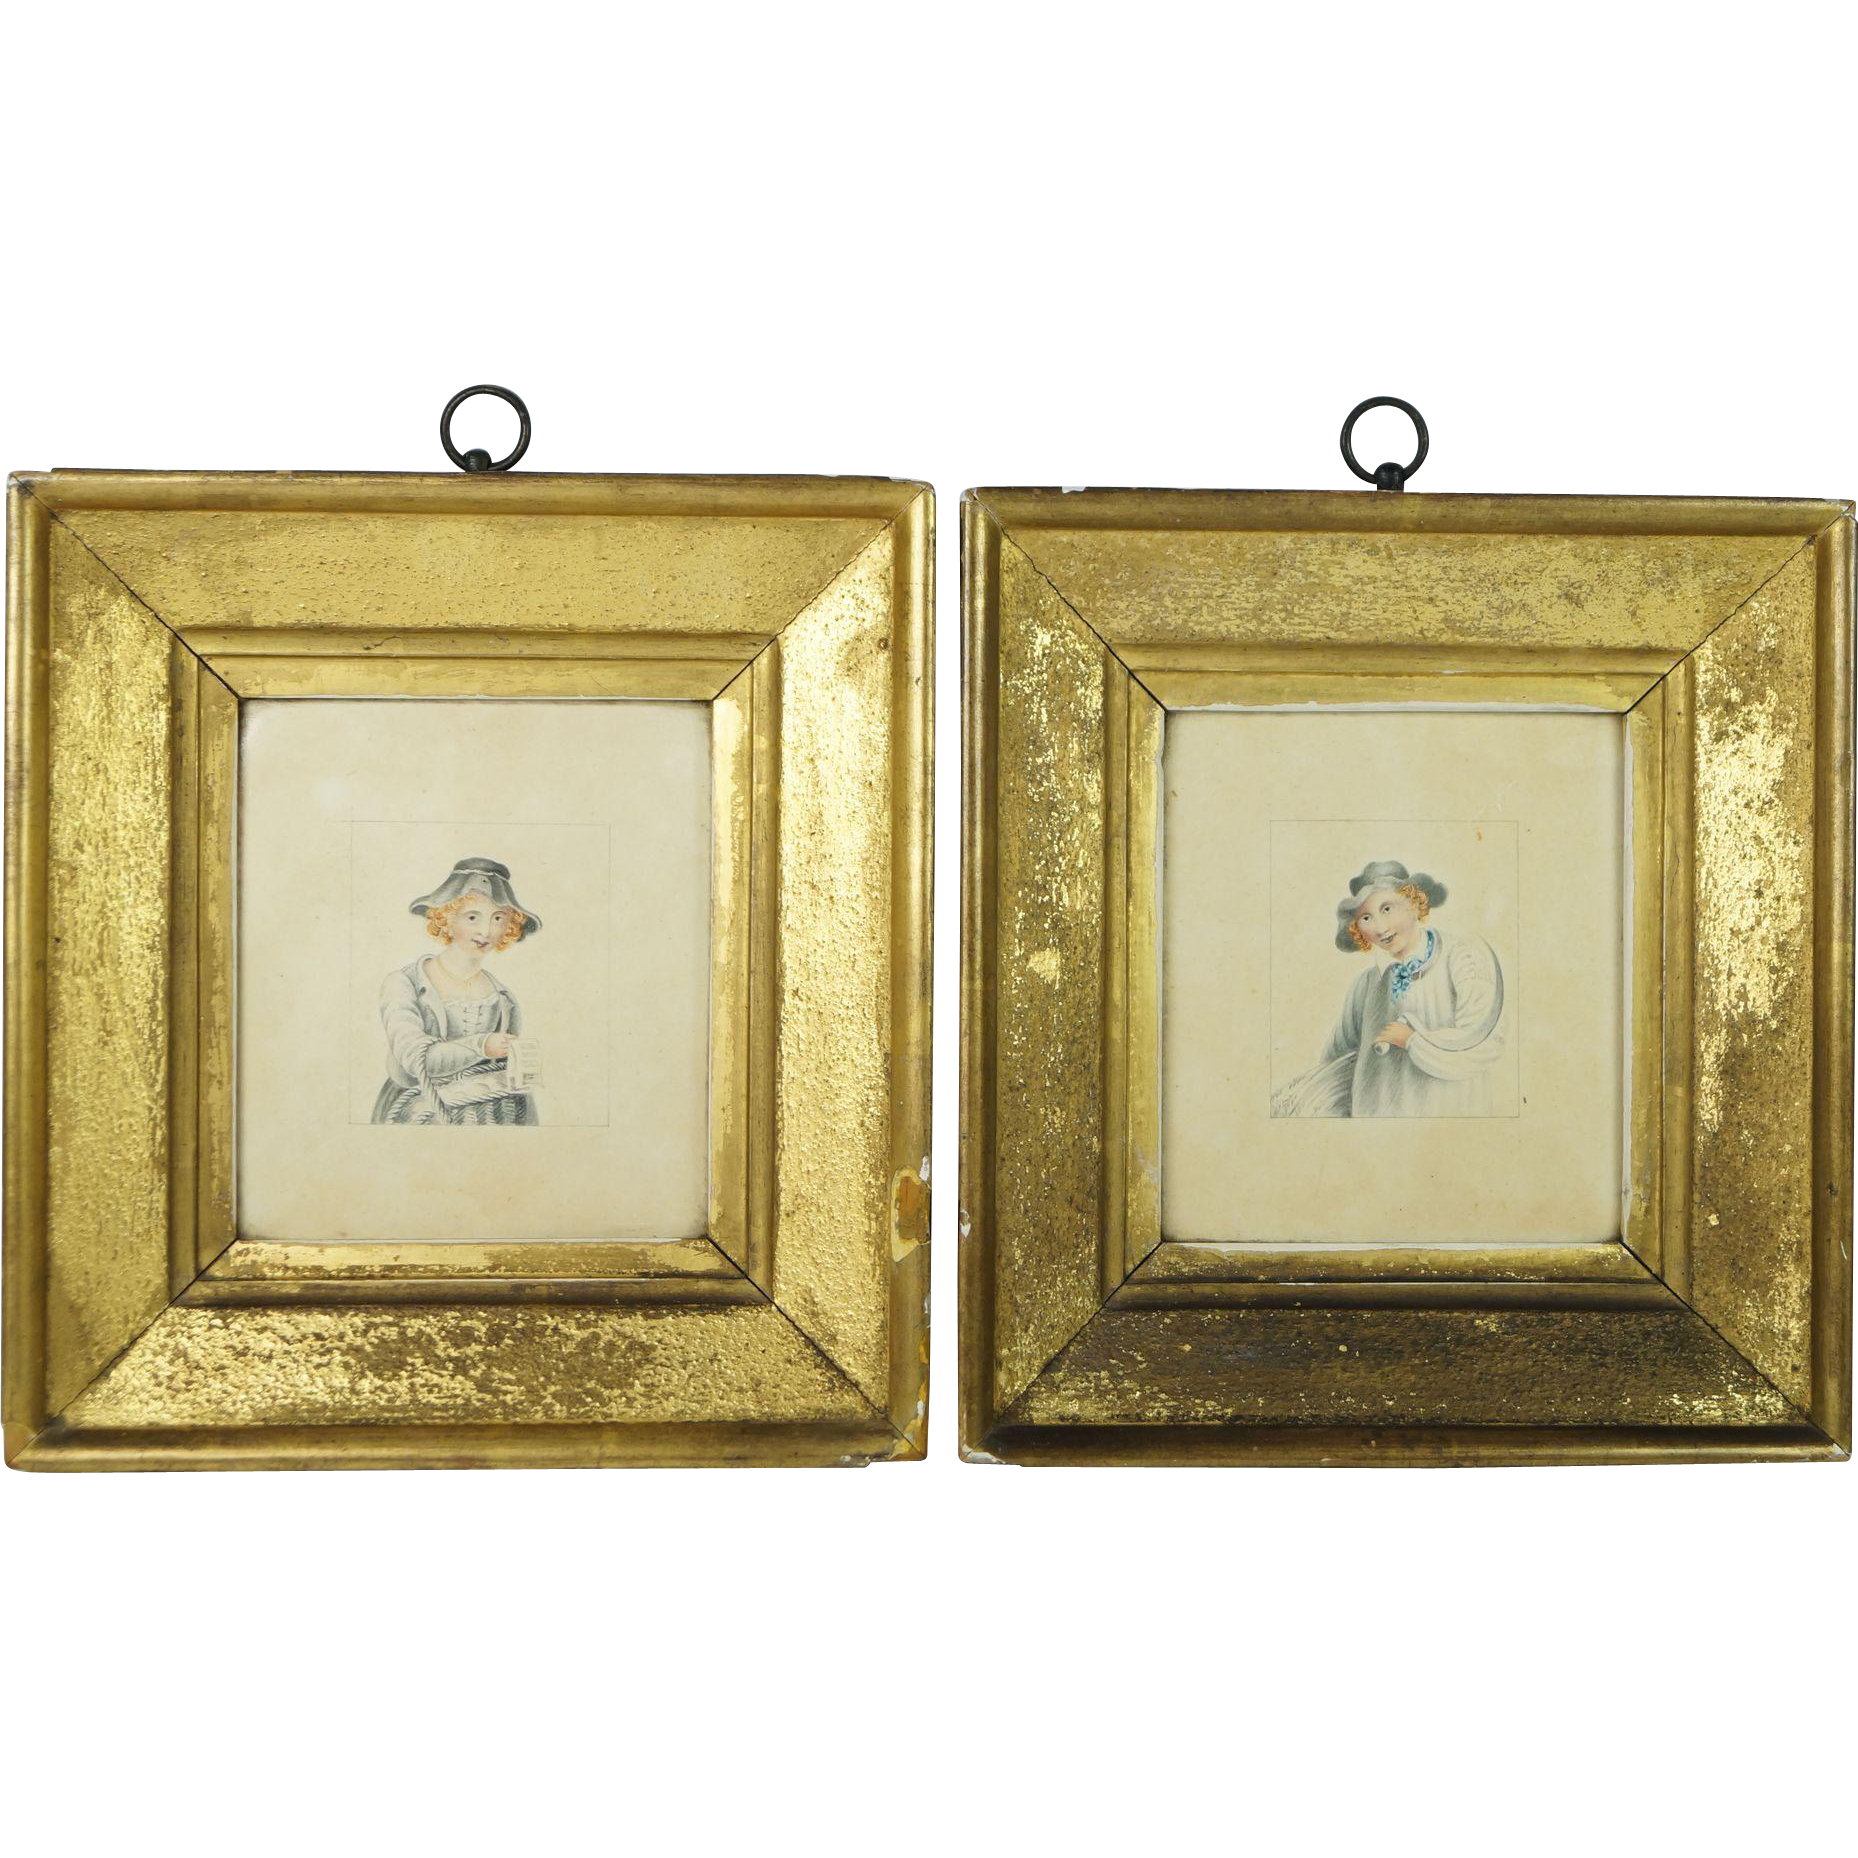 Georgian Miniature Watercolor Pair Lemon Gilt Frame English Circa 1800